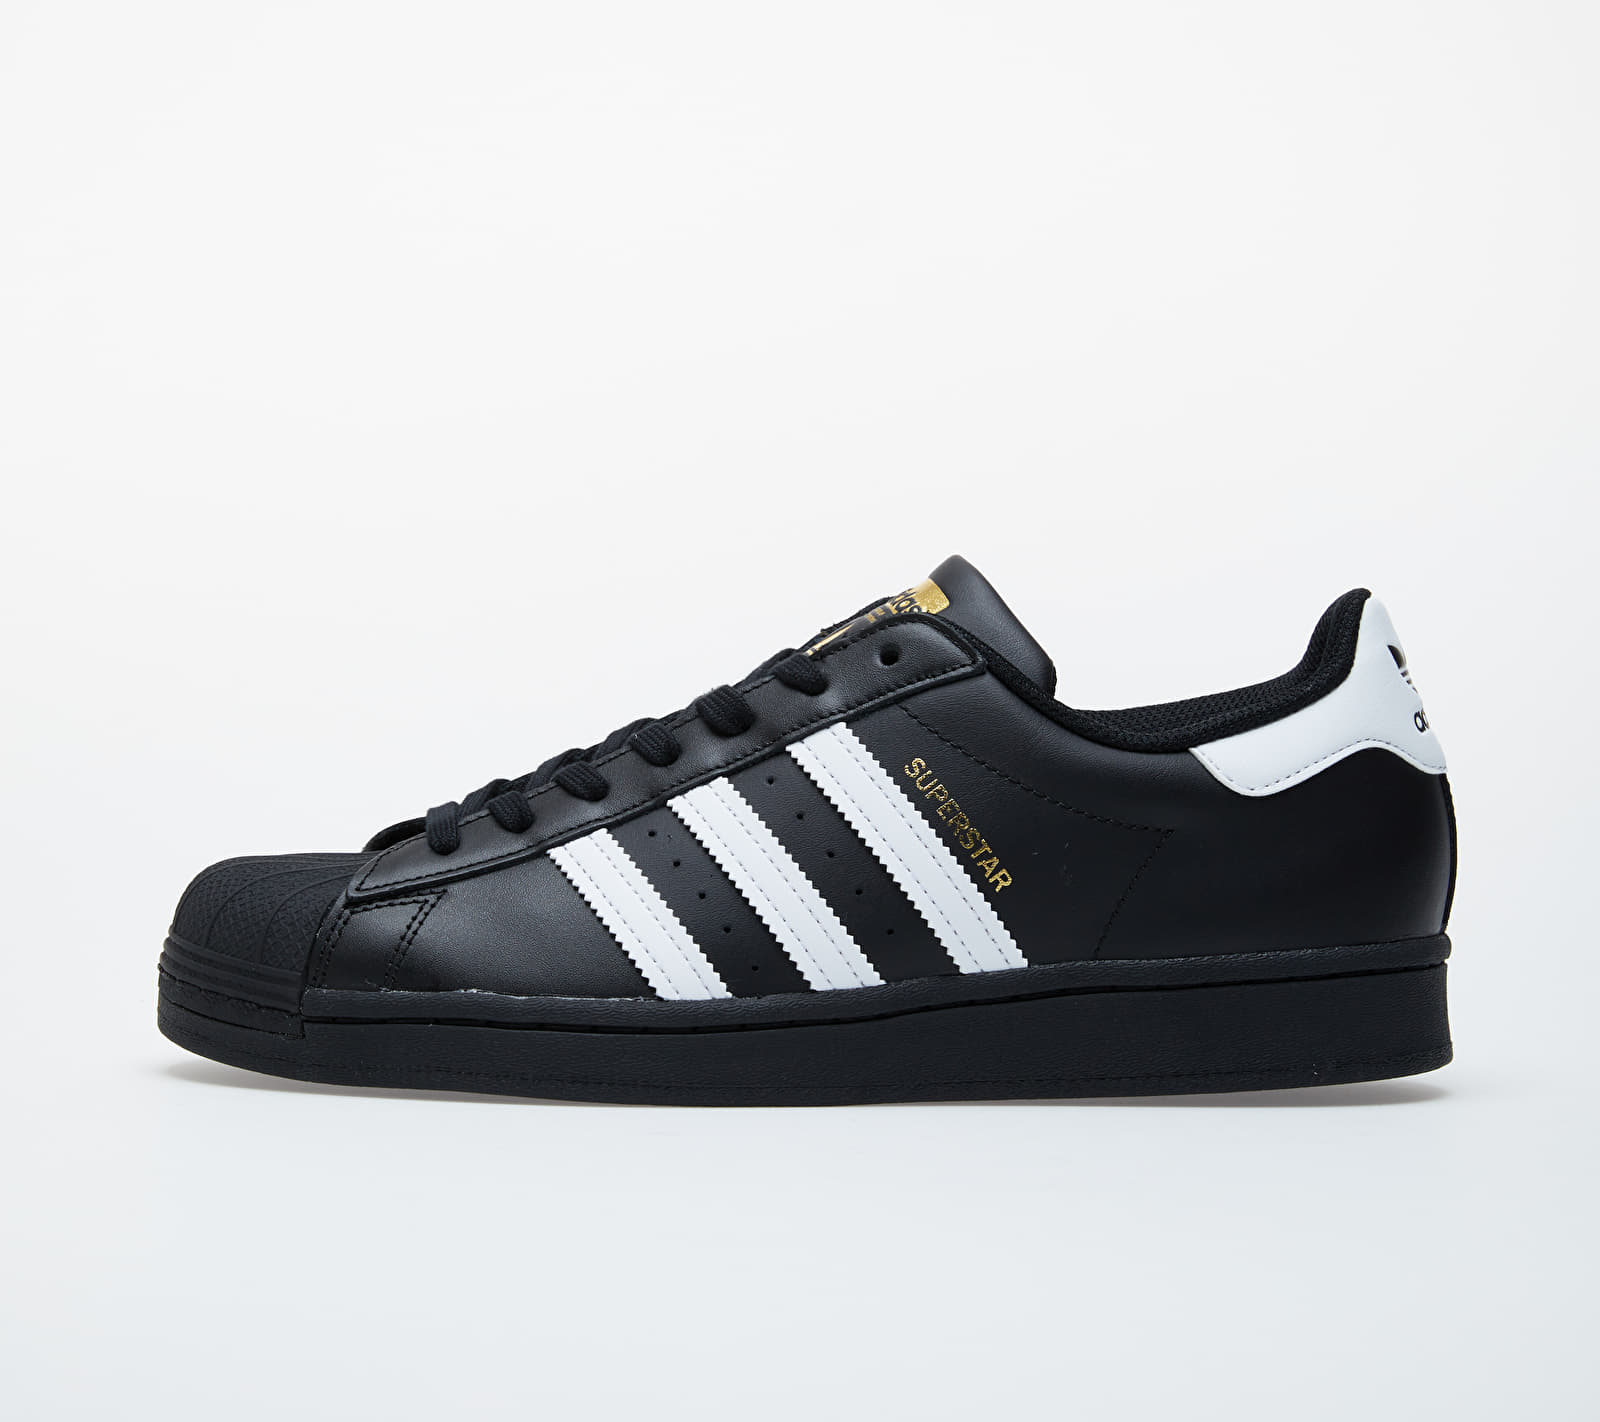 adidas Superstar Core Black/ Ftw White/ Core Black EUR 36